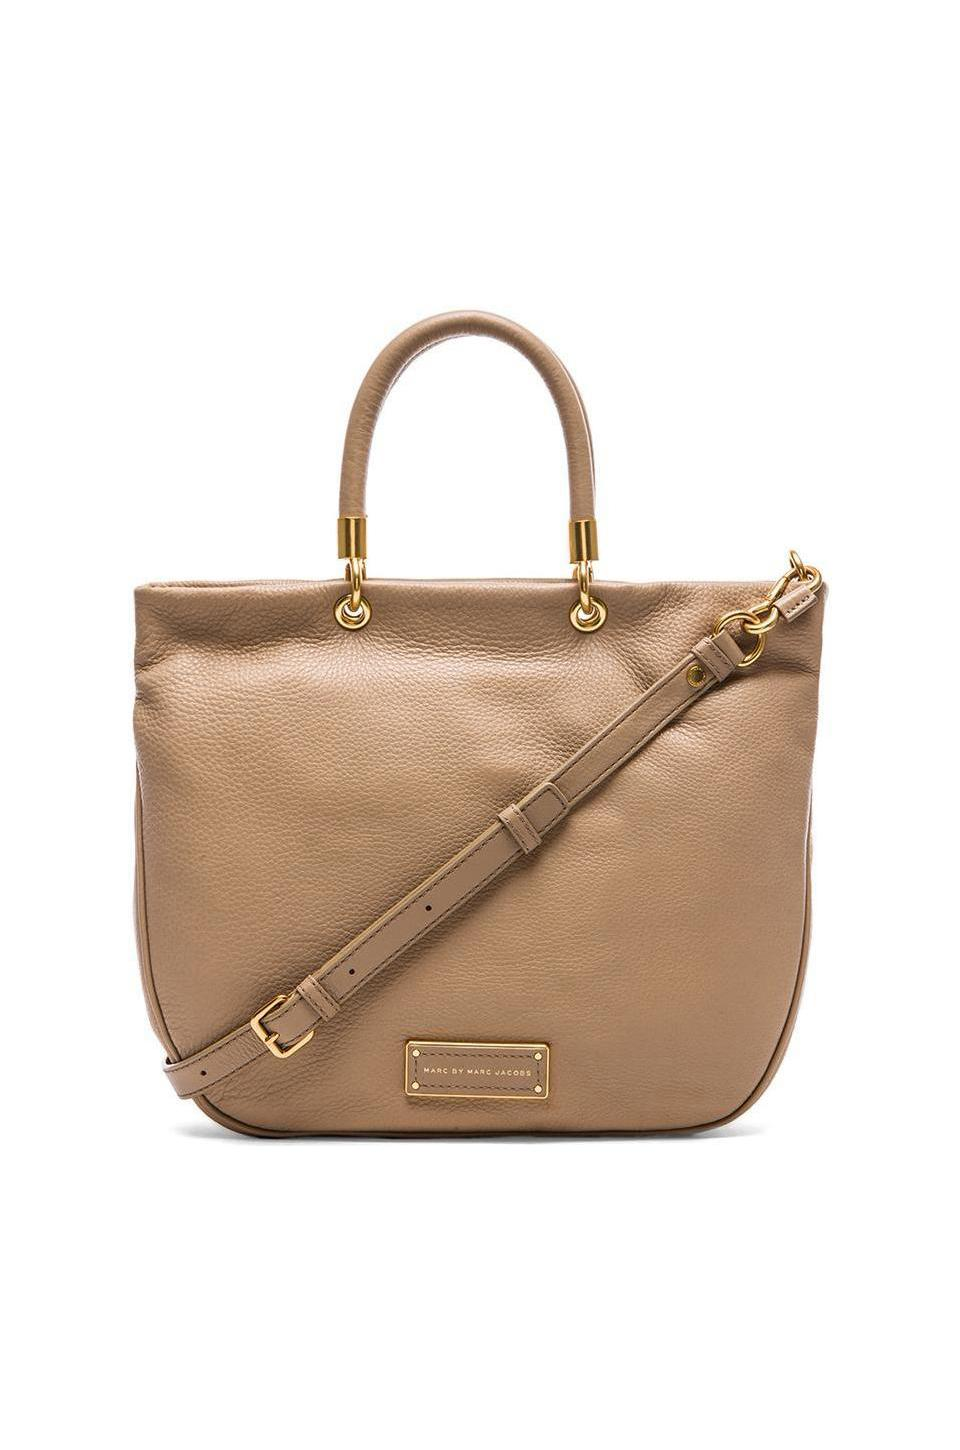 Marc by Marc Jacobs Too Hot to Handle Mini Shopper in Tracker Tan